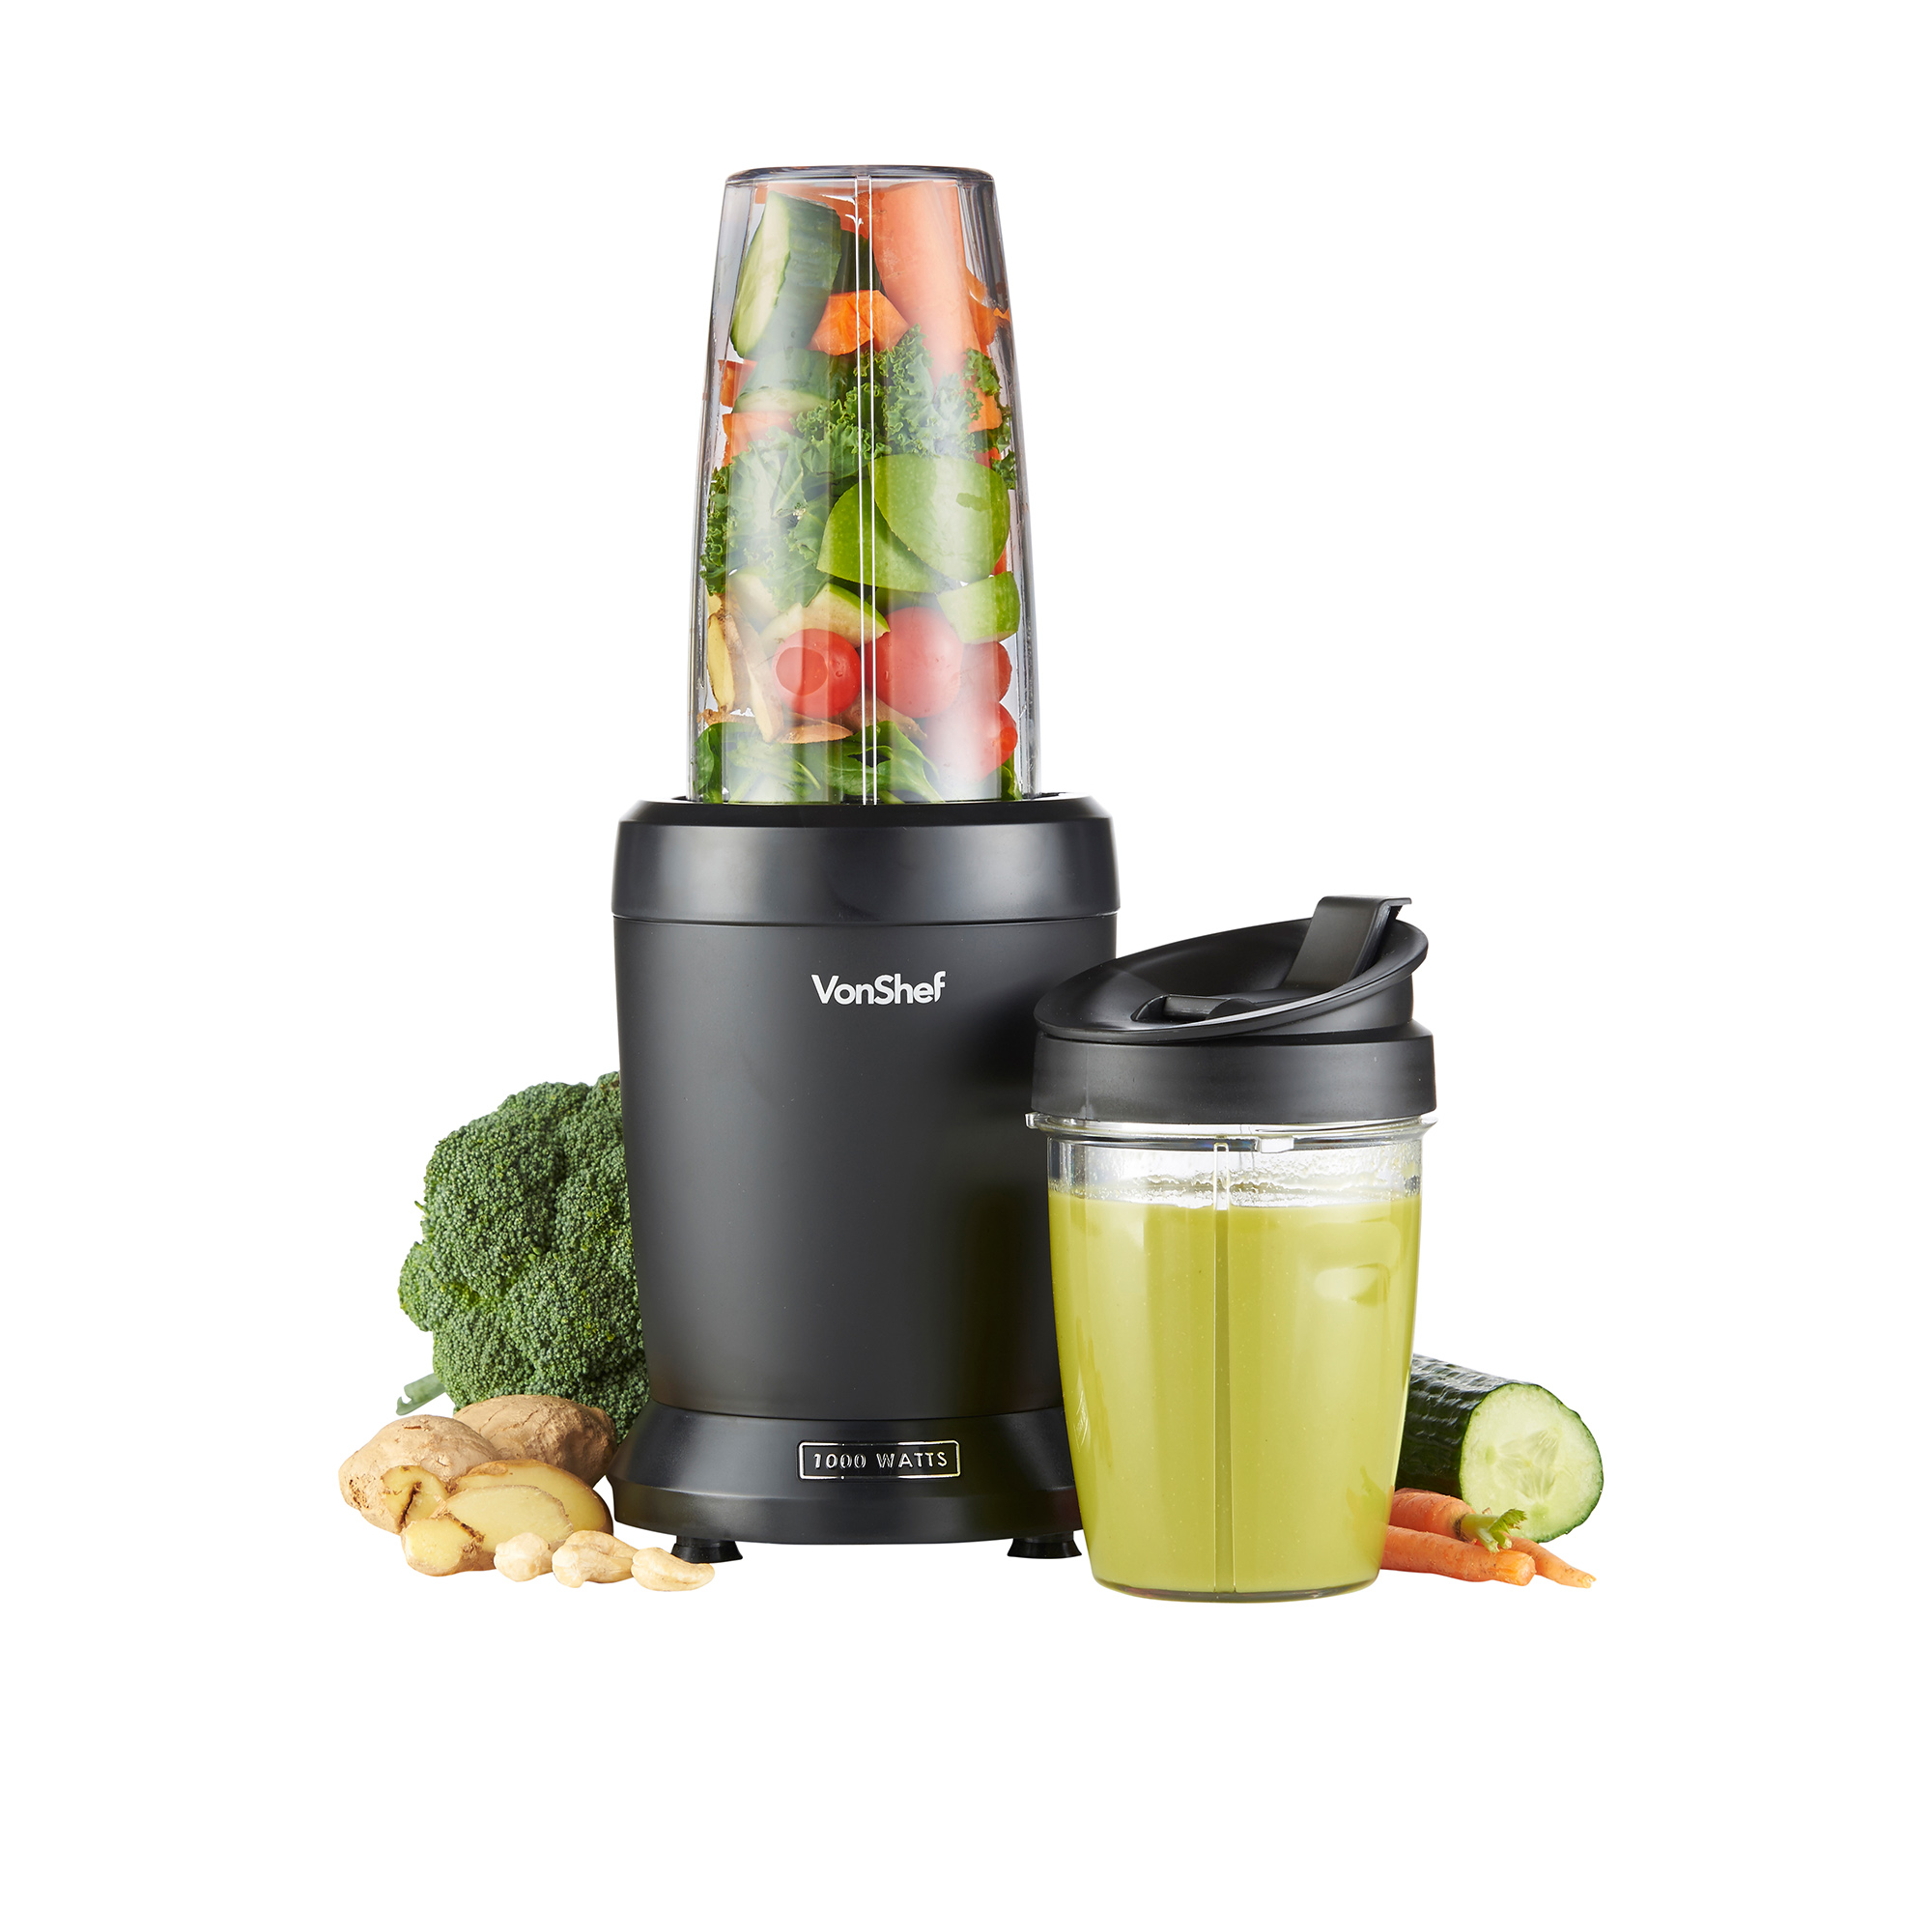 VonShef 1000W UltraBlend Extractor Blender Nutrition Juicer Smoothie Mixer 689994344125 | eBay